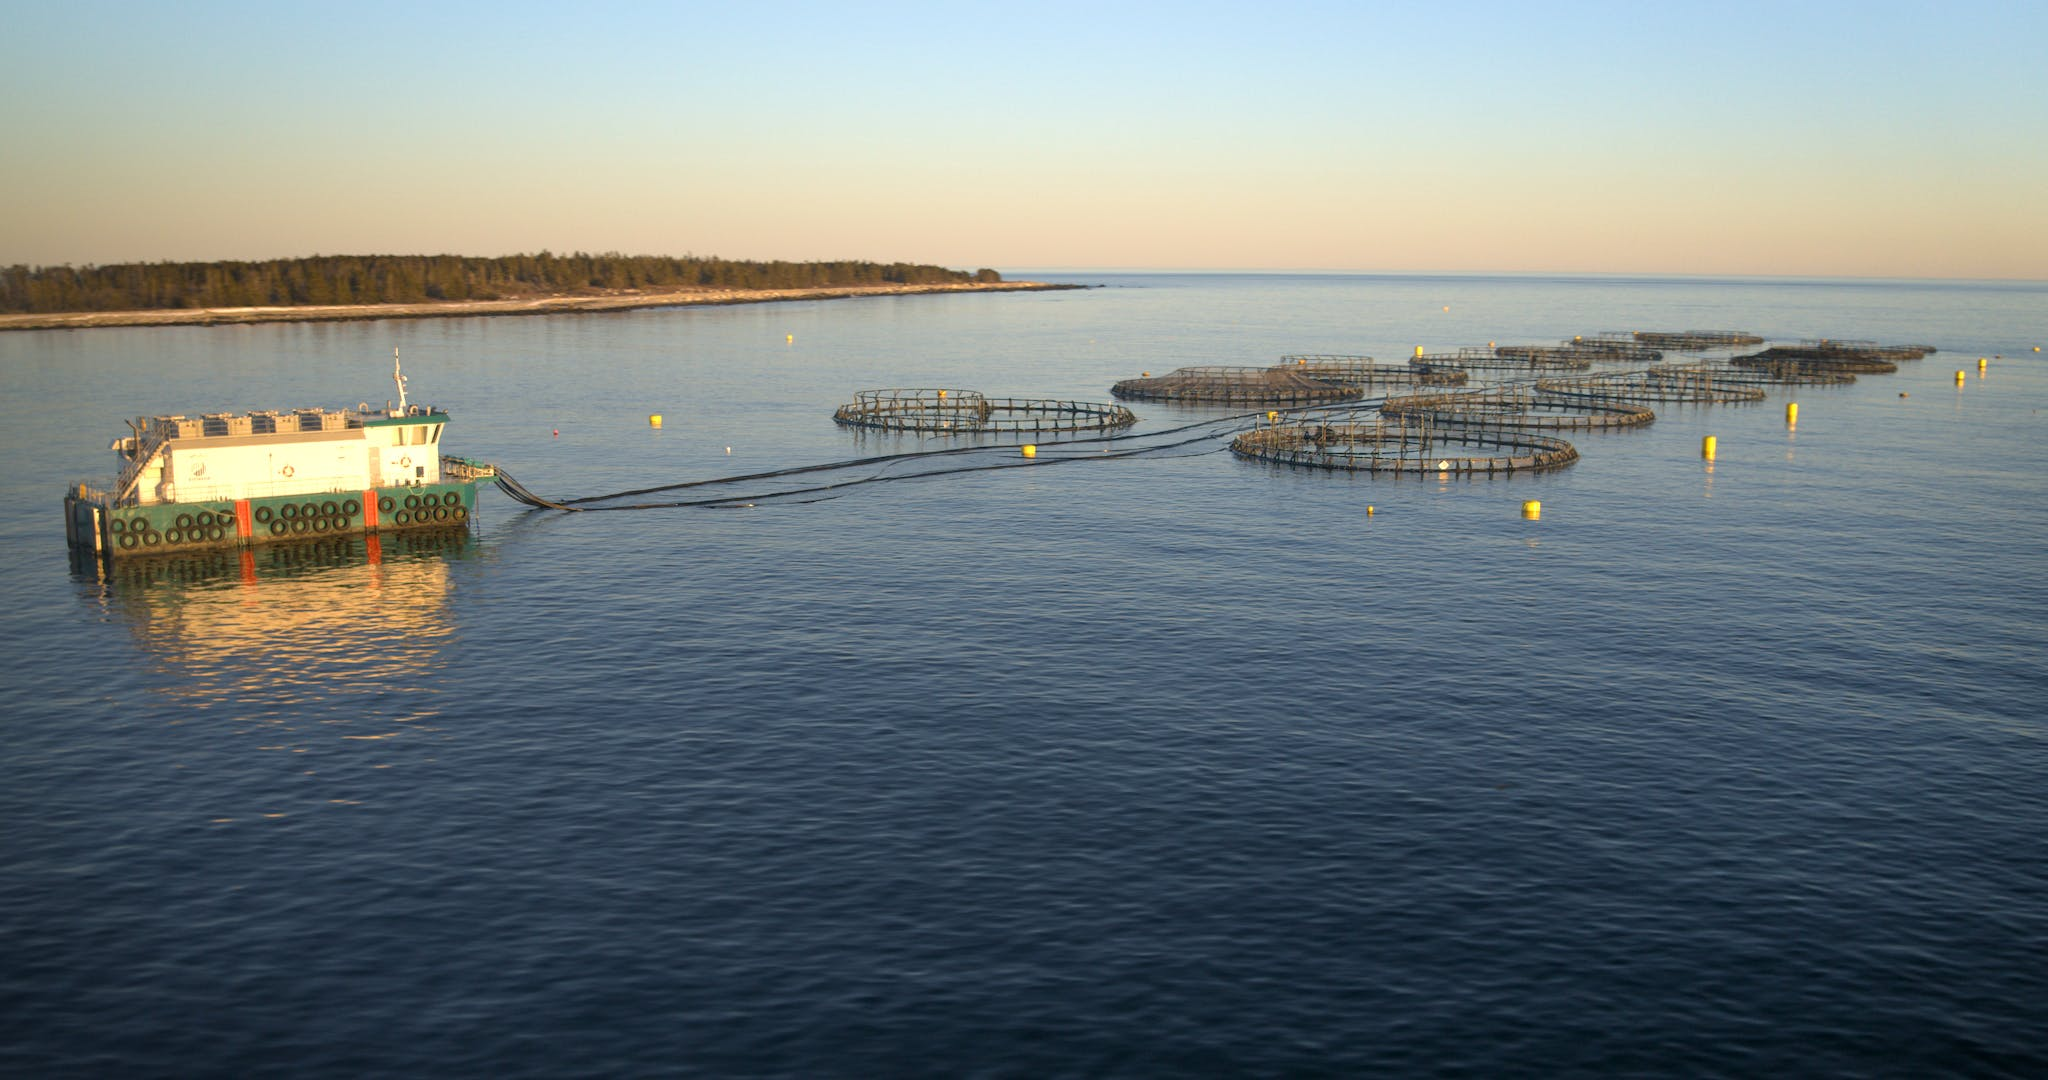 In the aquaculture industry, the fish monitoring technology developed through the Ocean Aware project will aim to provide better information for fish farmers on the health of the farm environment, and their fish crop.